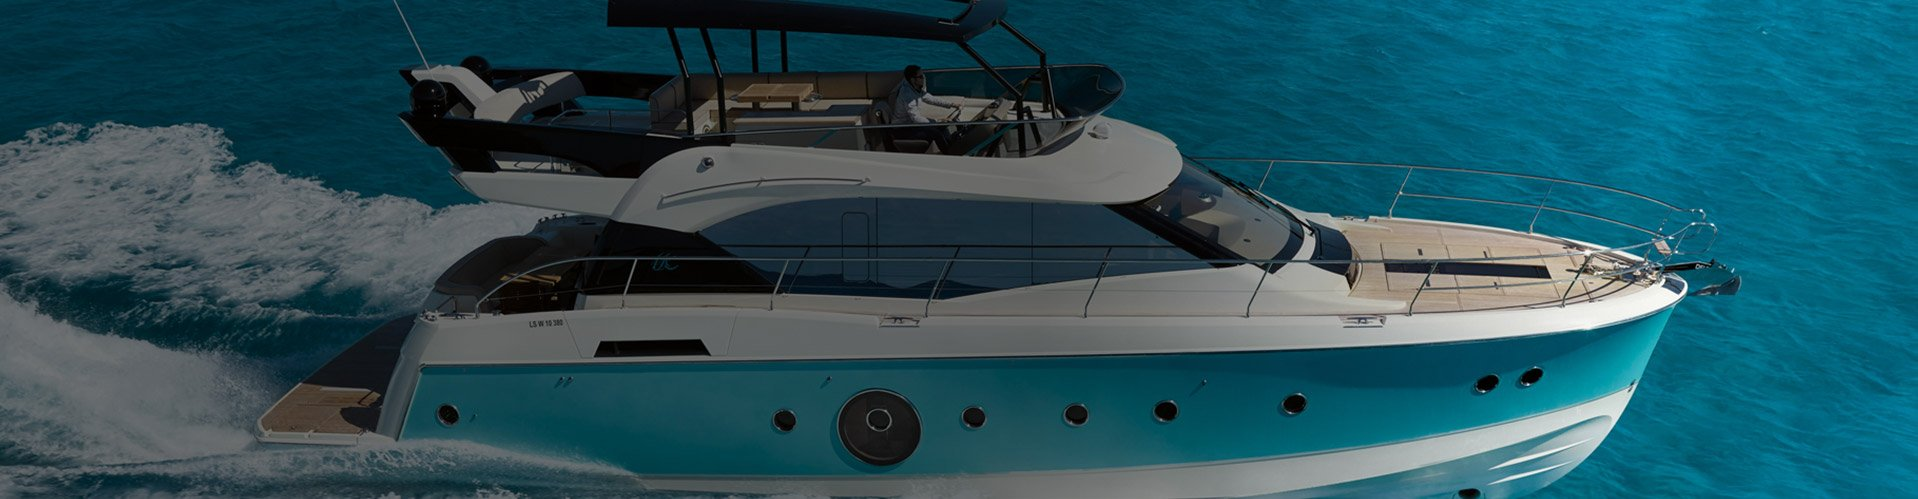 From small daily cruisers to large fully crewed luxury yachts.